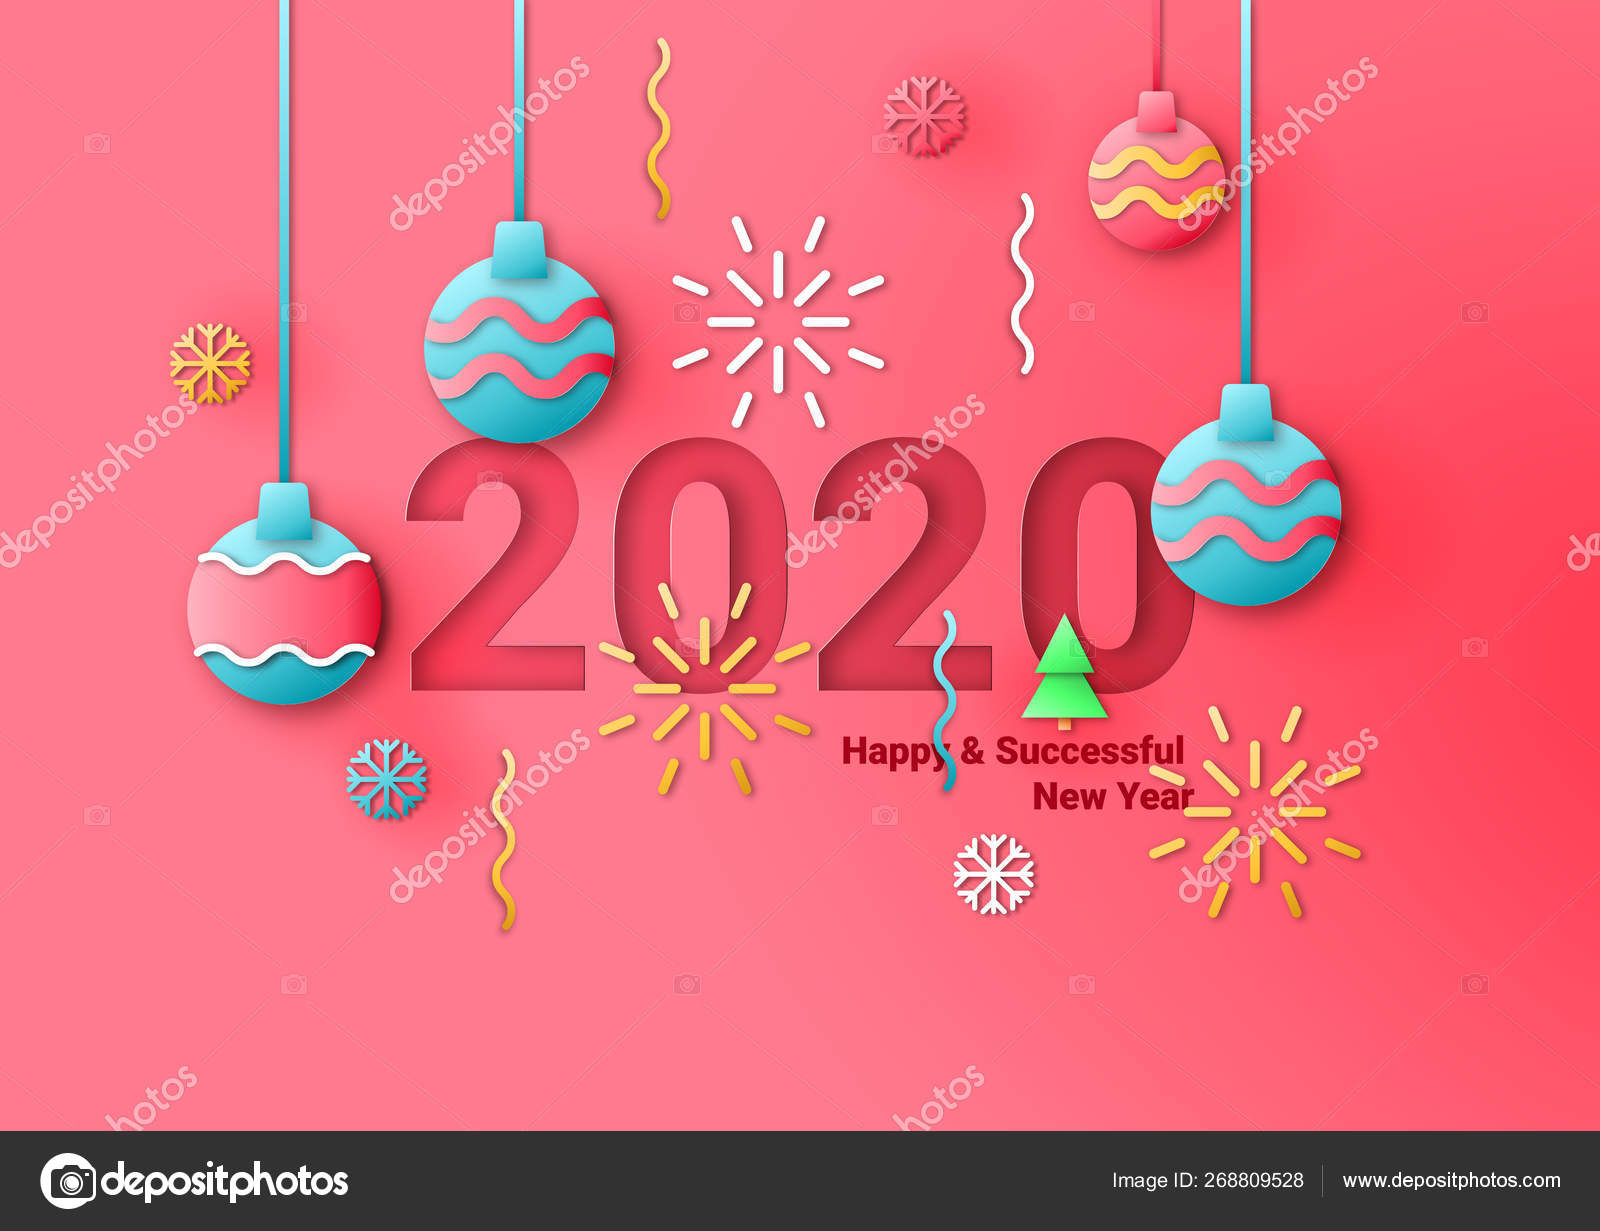 Business Happy New Year 2020 greeting card. Vector illustration concept for  background, greeting card, banner for website, social media banner,  marketing material — Stock Vector © liurii.86@gmail.com #268809528